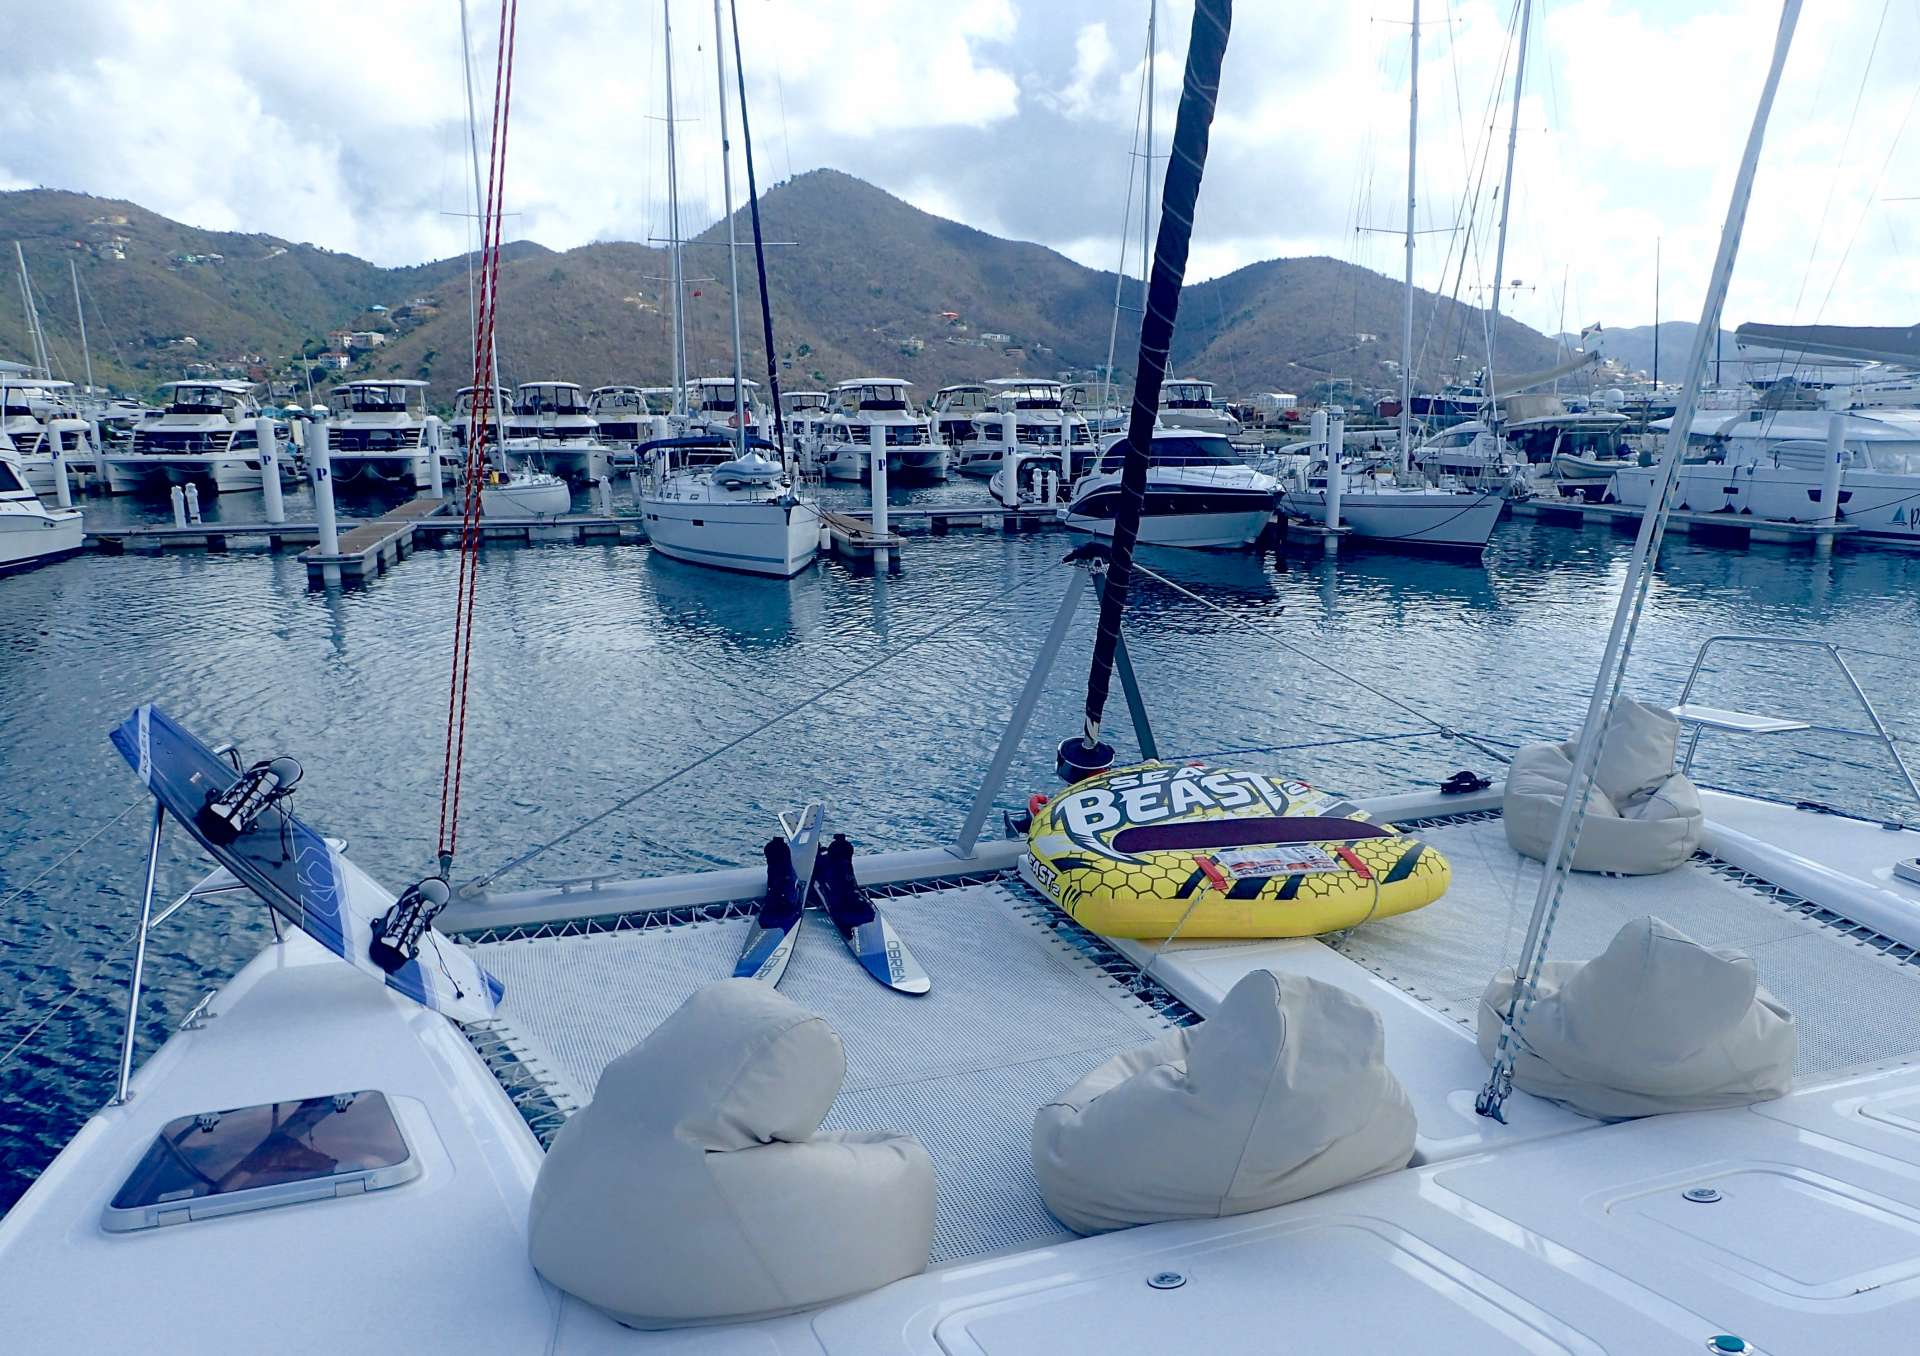 On the foredeck with beanbags